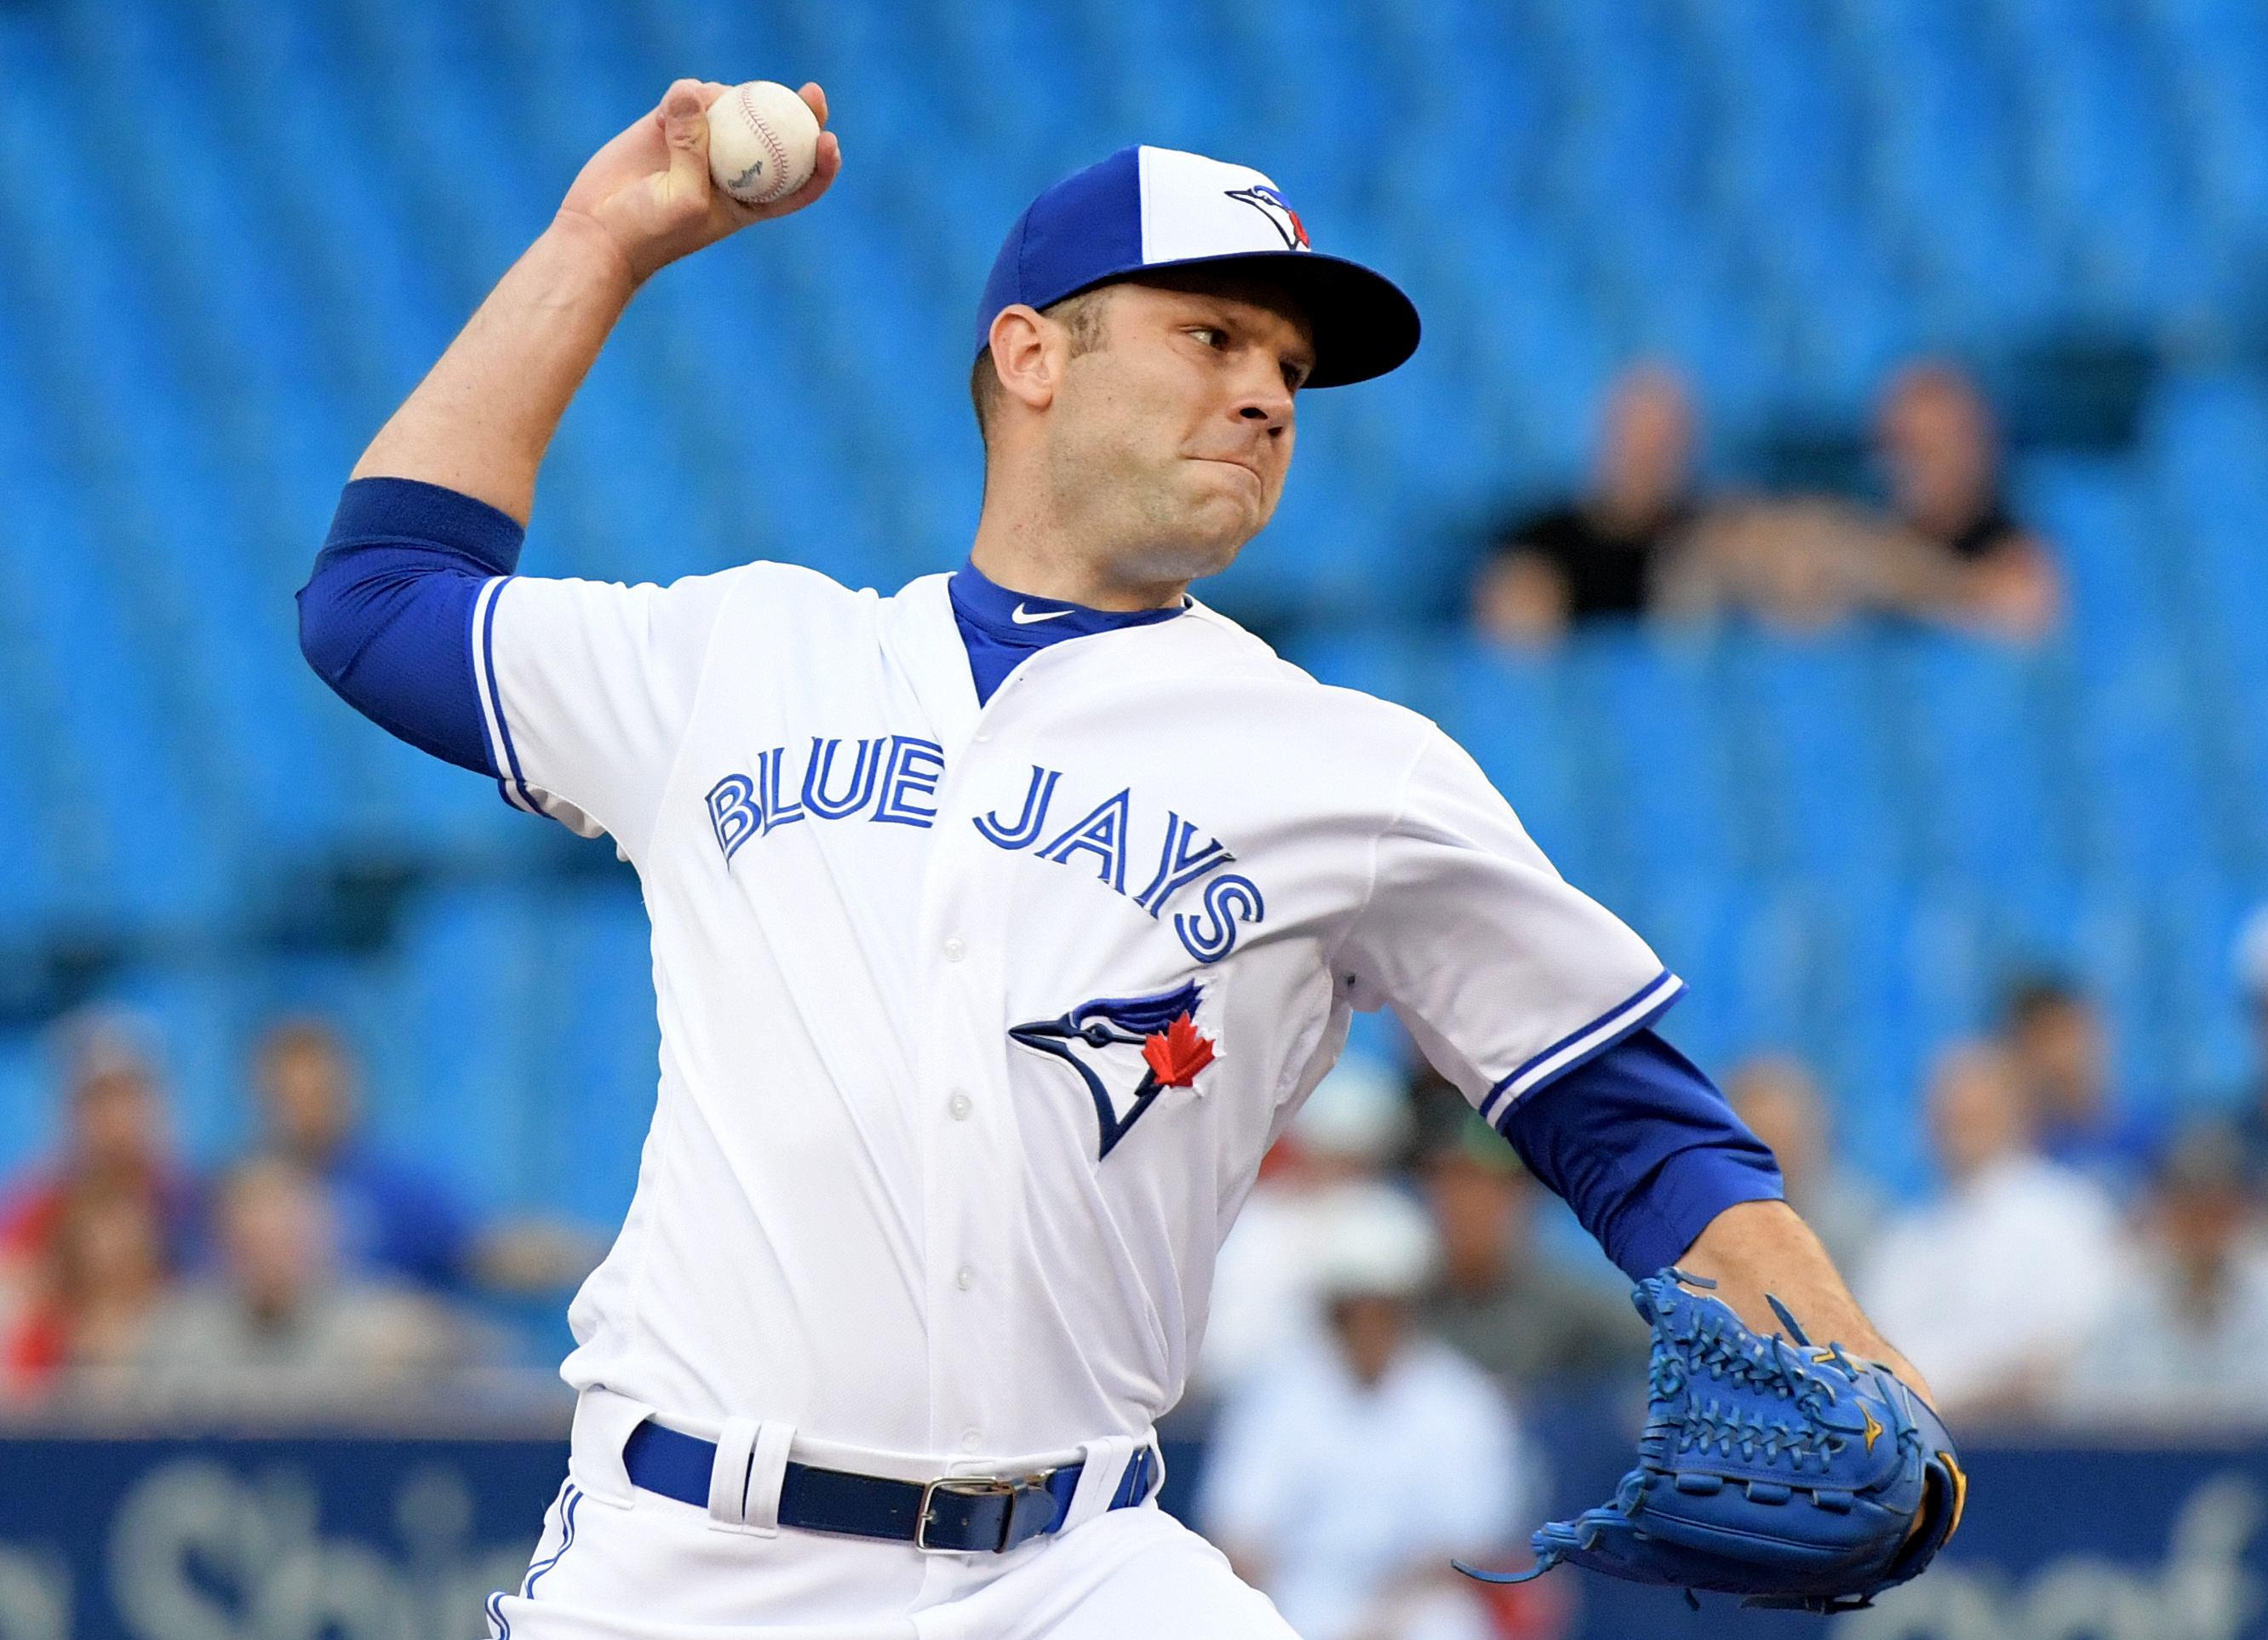 Cubs acquire reliever David Phelps from the Blue Jays for prospect Thomas Hatch